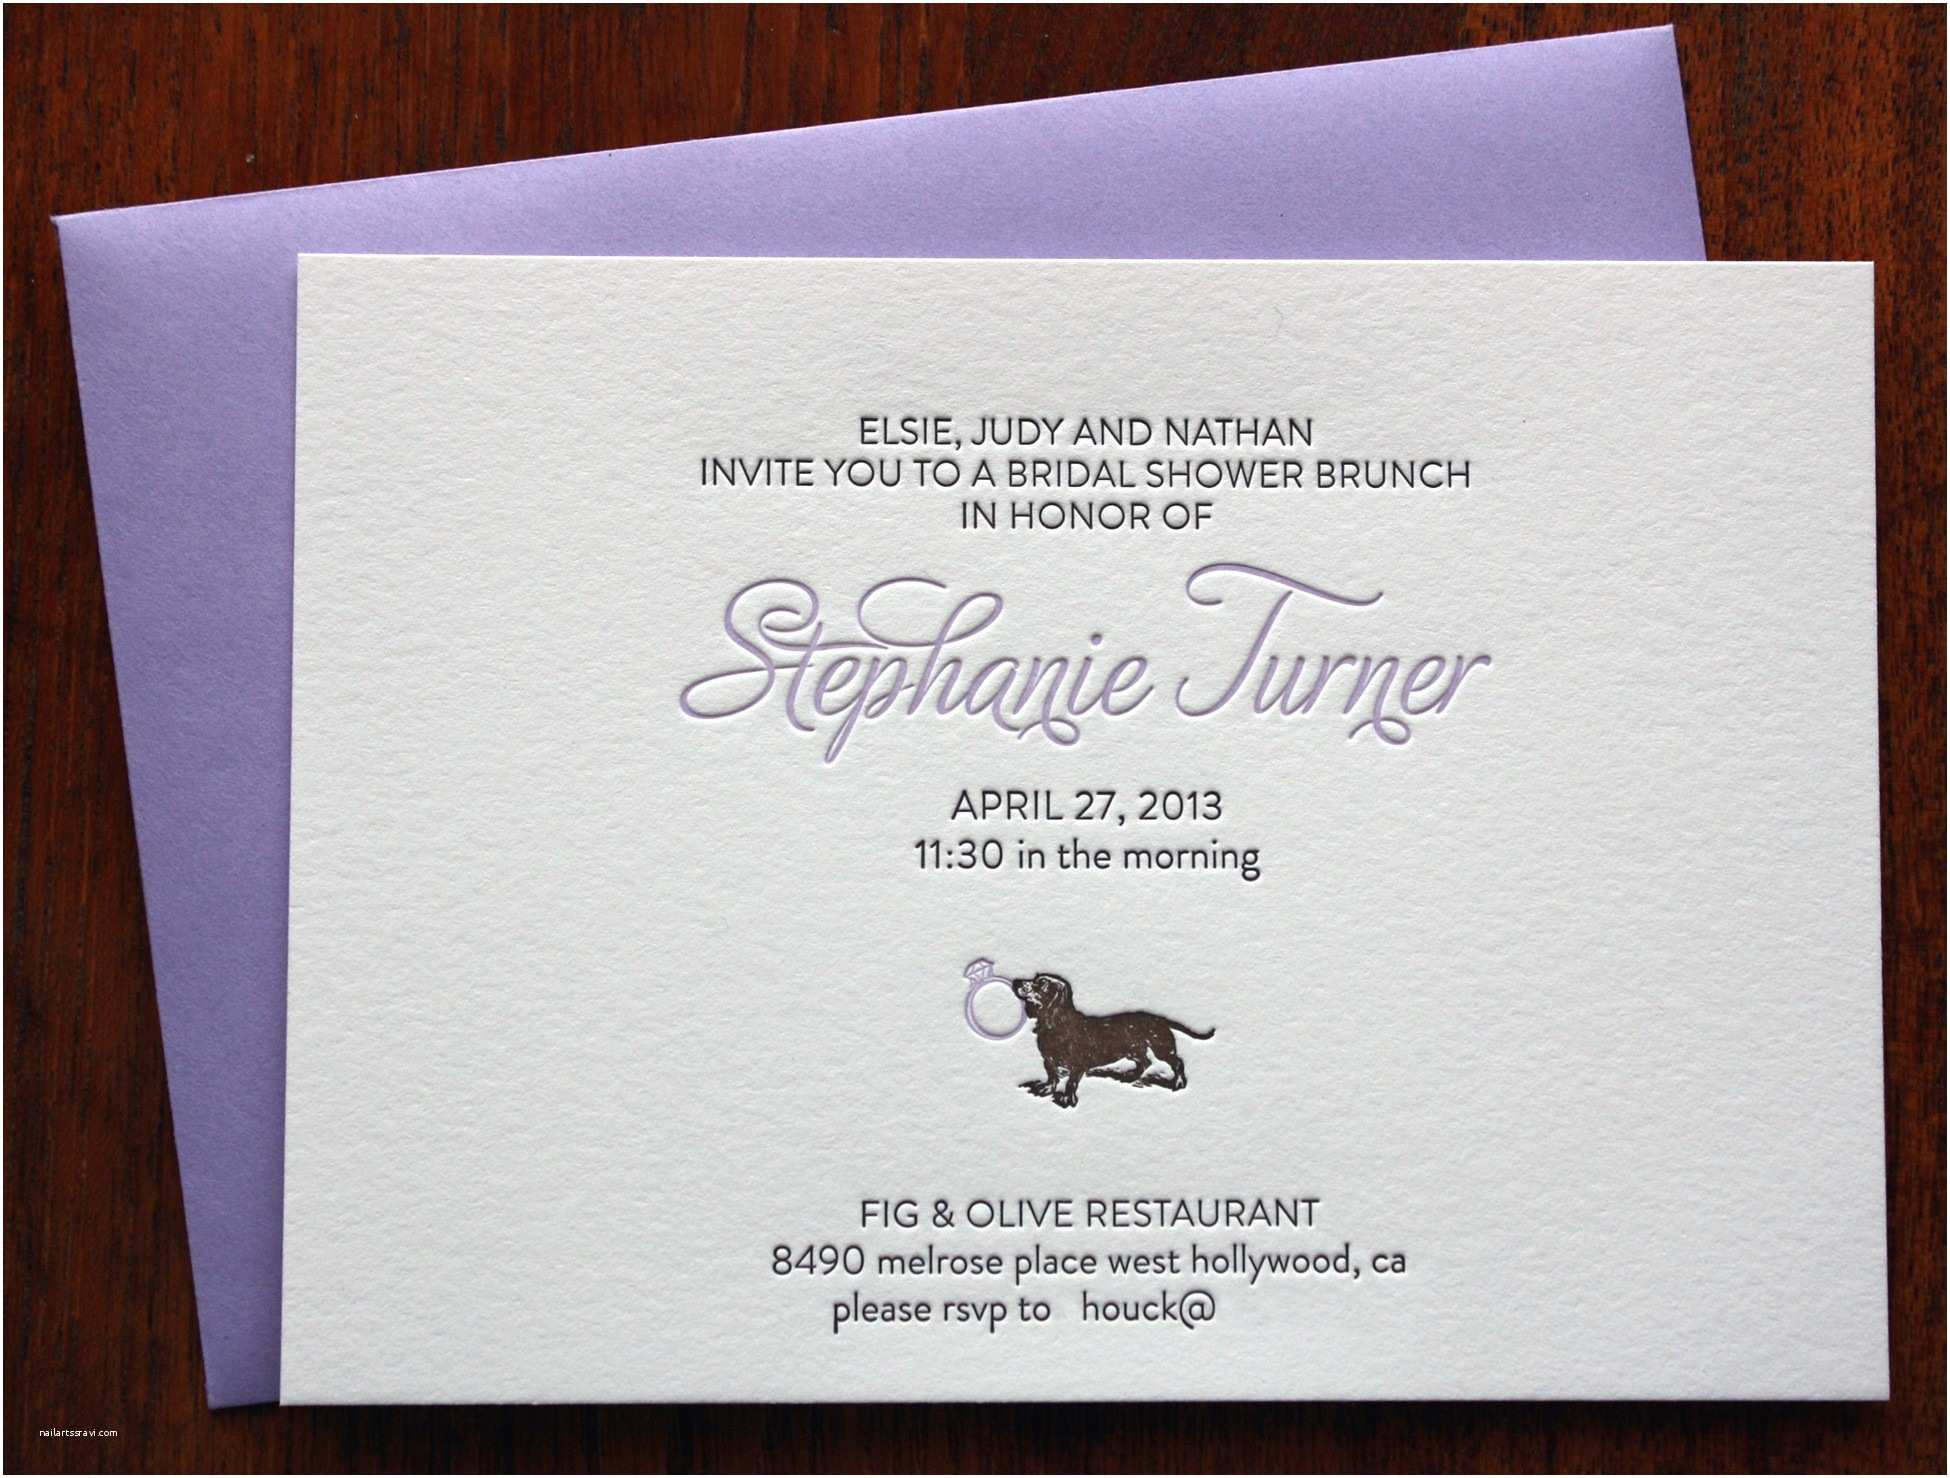 Post Wedding Breakfast Invitation Wording Arrangement Cute Post Wedding Brunch Invitation Wording